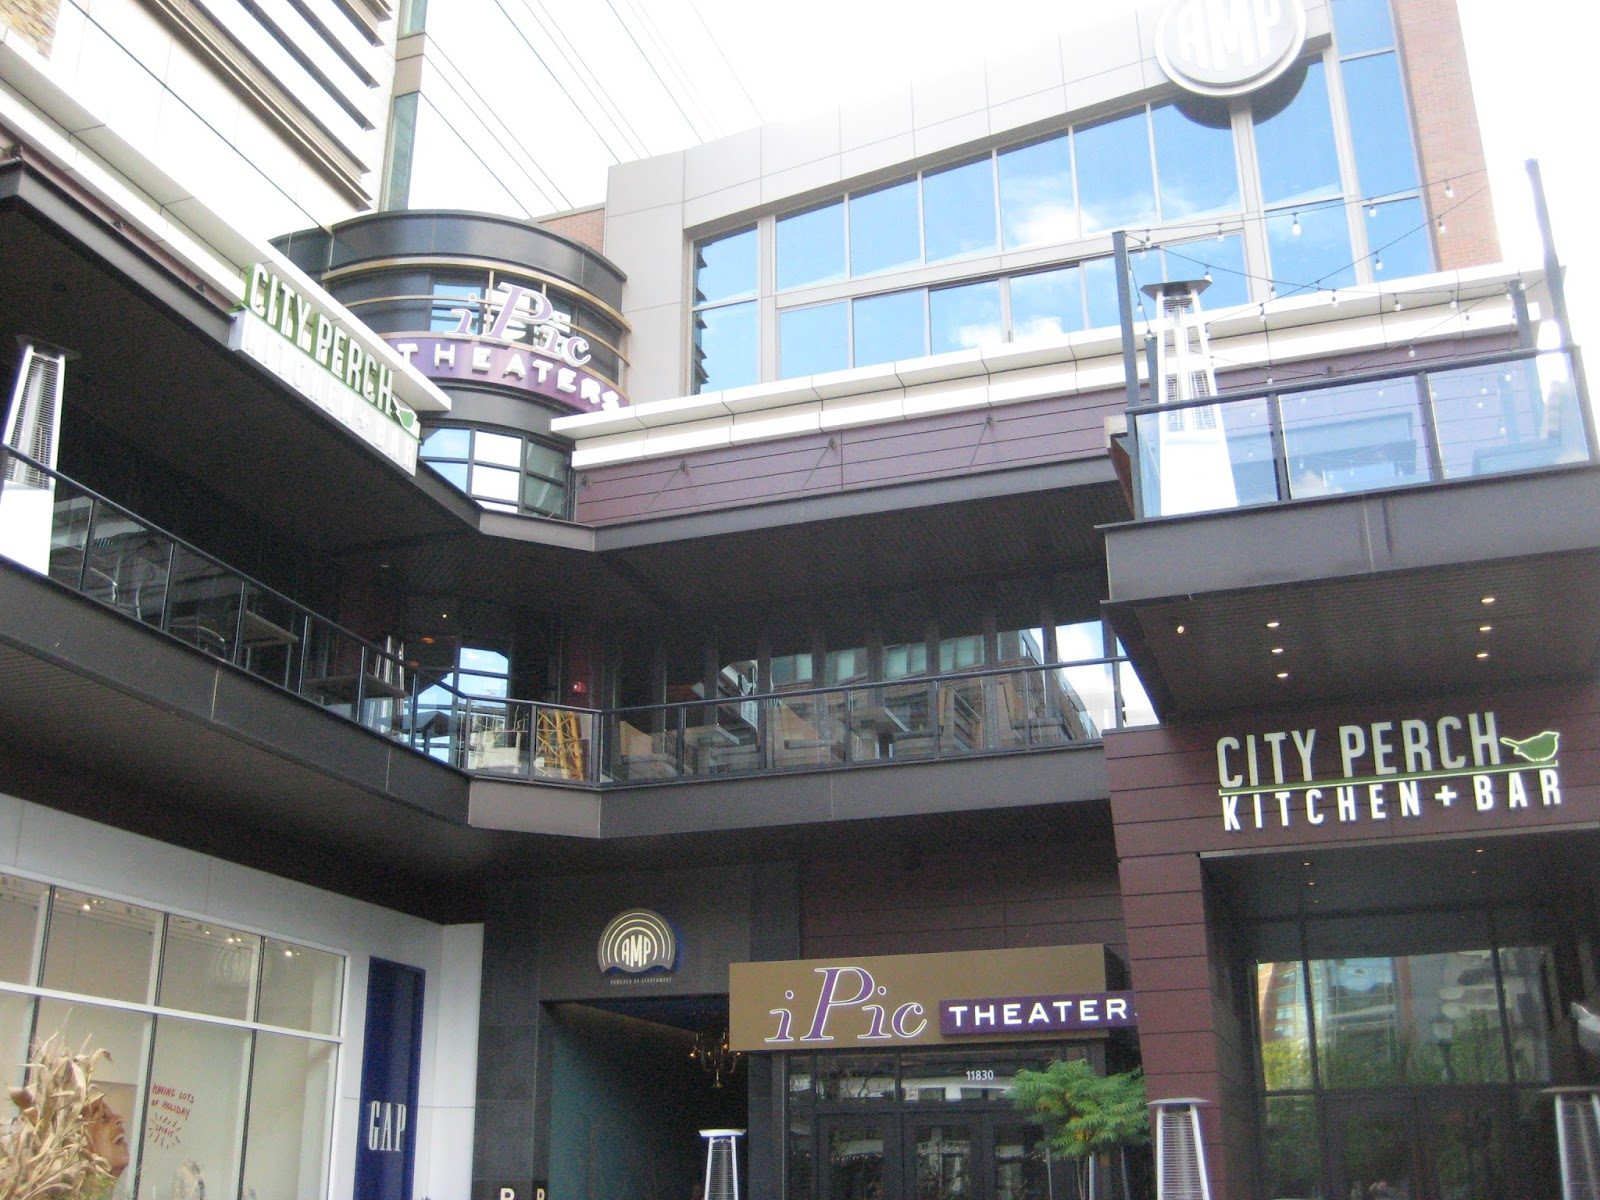 Robert Dyer Bethesda Row City Perch Teams Up With Rooftop